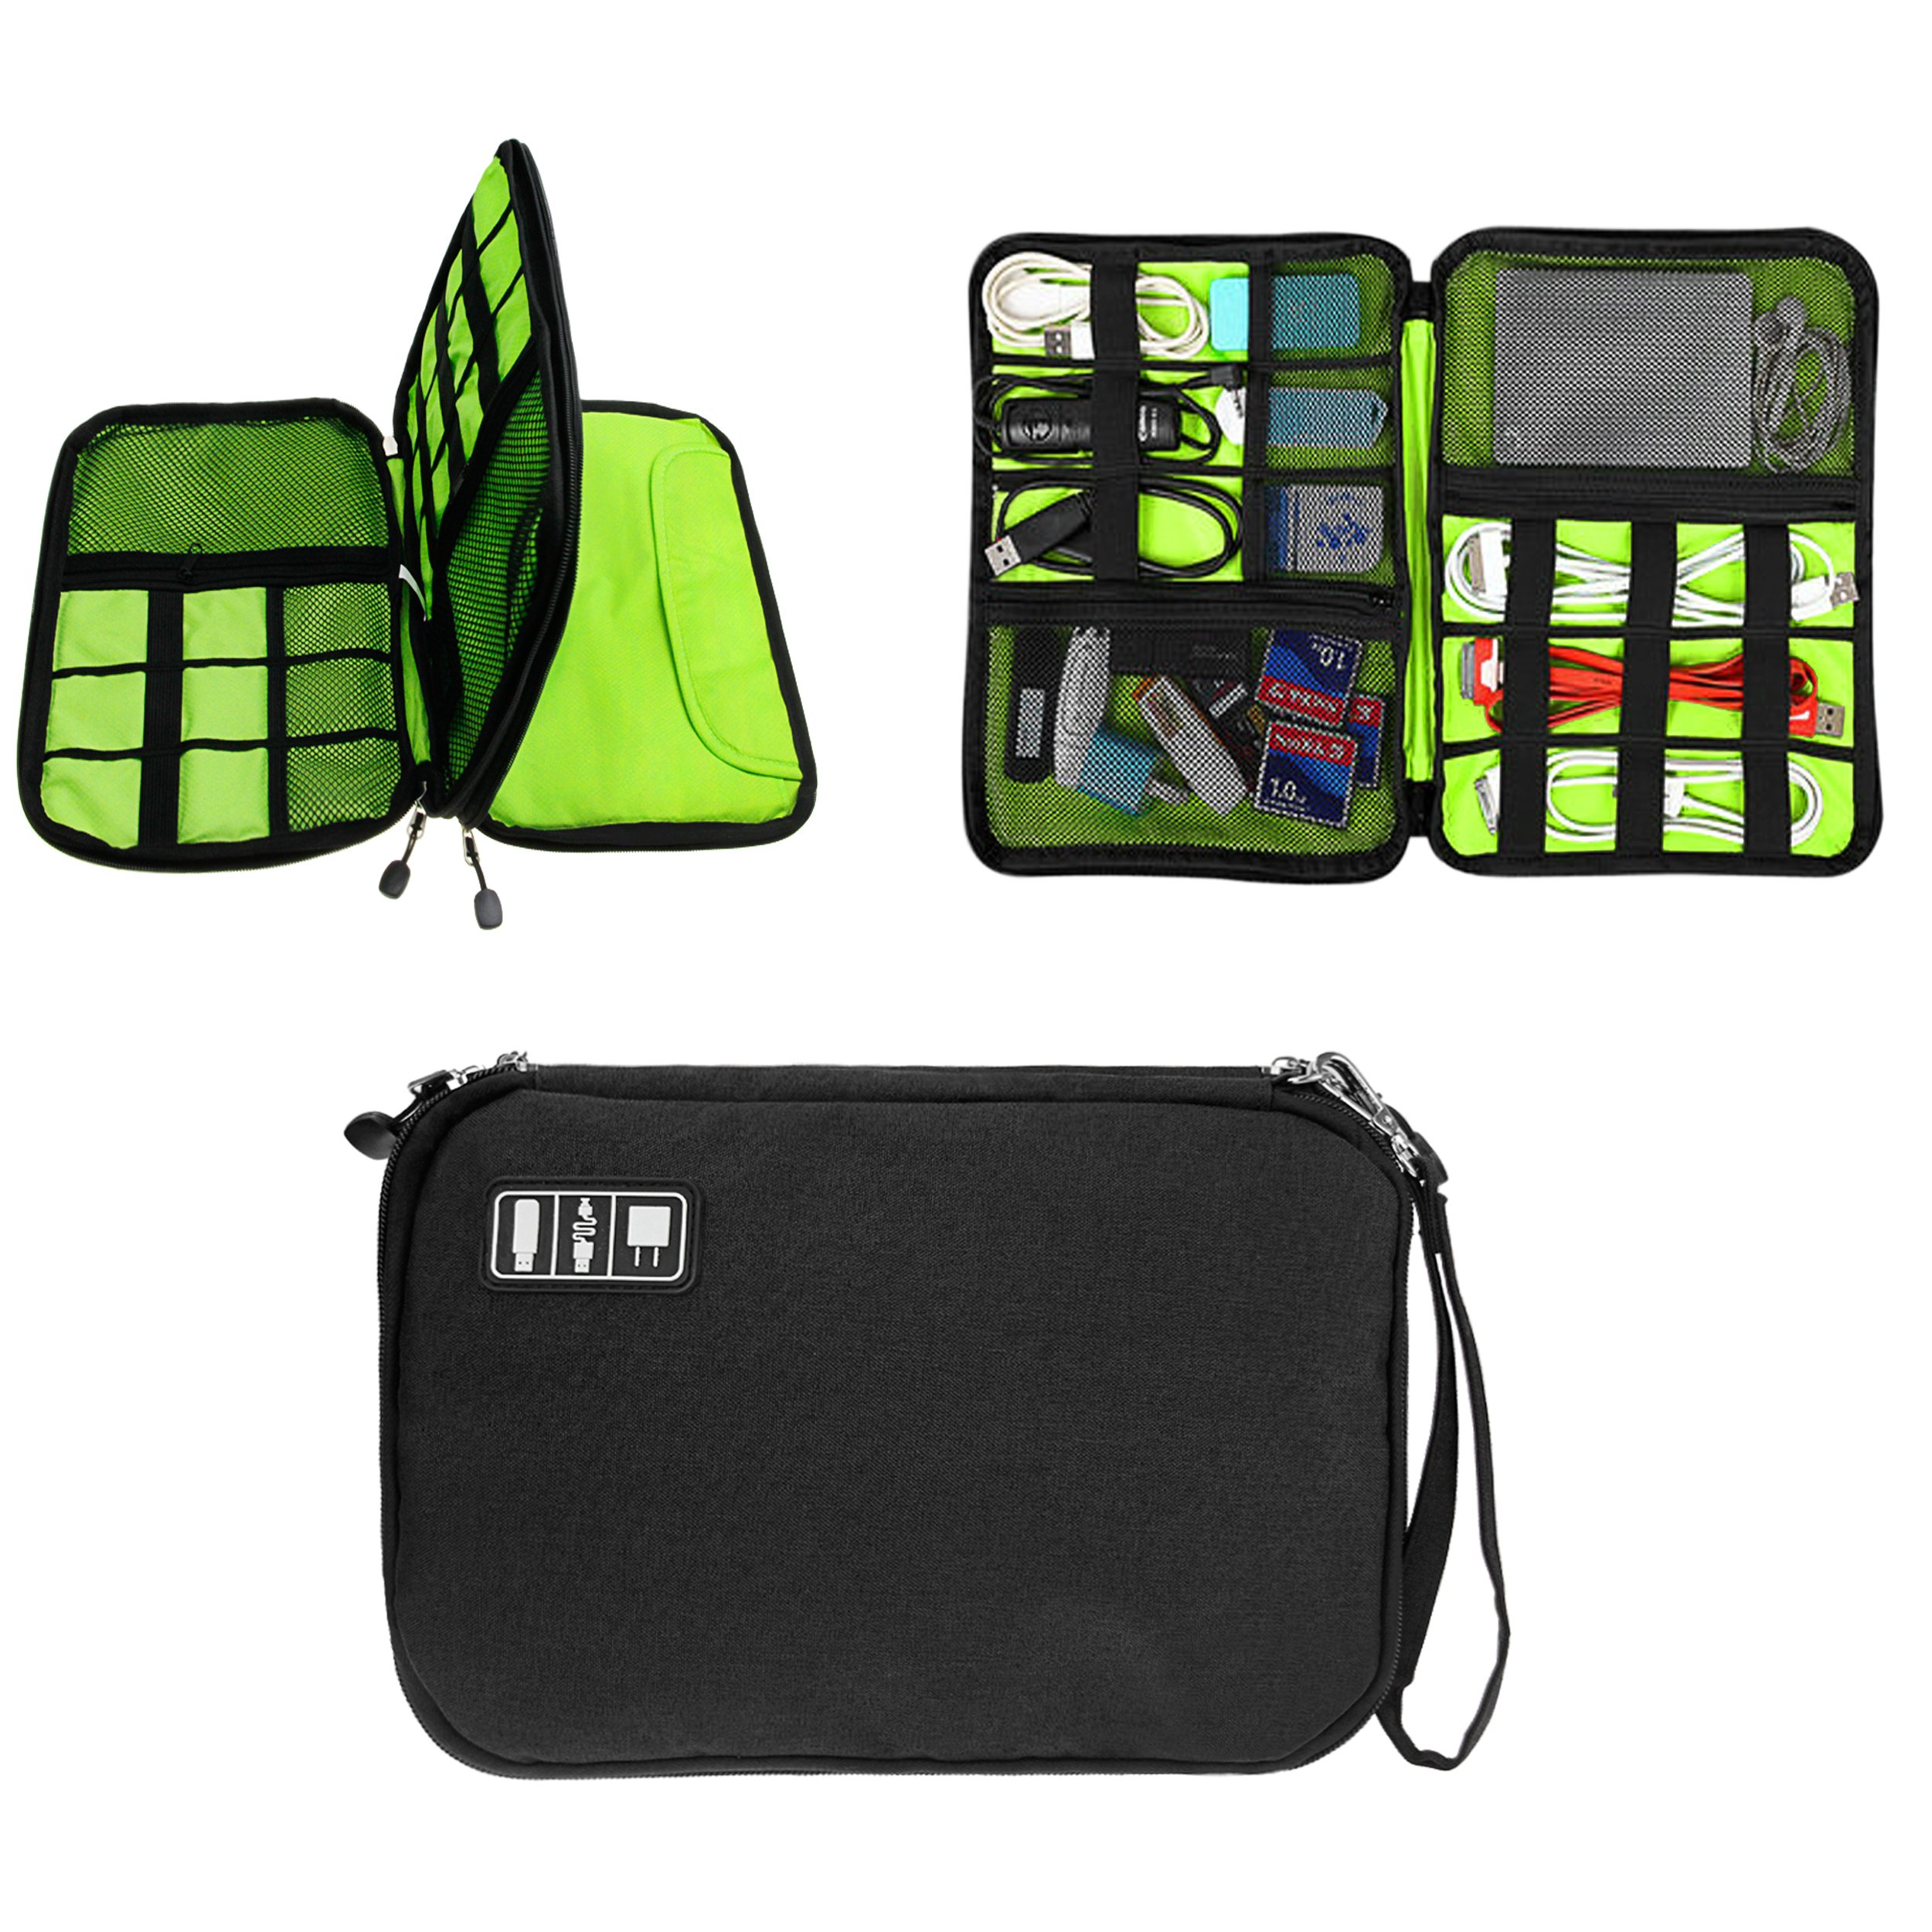 Double Layer USB Cable Hard Drive Case Electronics Accessory Organizer iPad Tablet Cellphone Cord Shuttle SD Card Reader Holder Travel Carrying Storage Bag Headphone Charger Clutter Protection Case